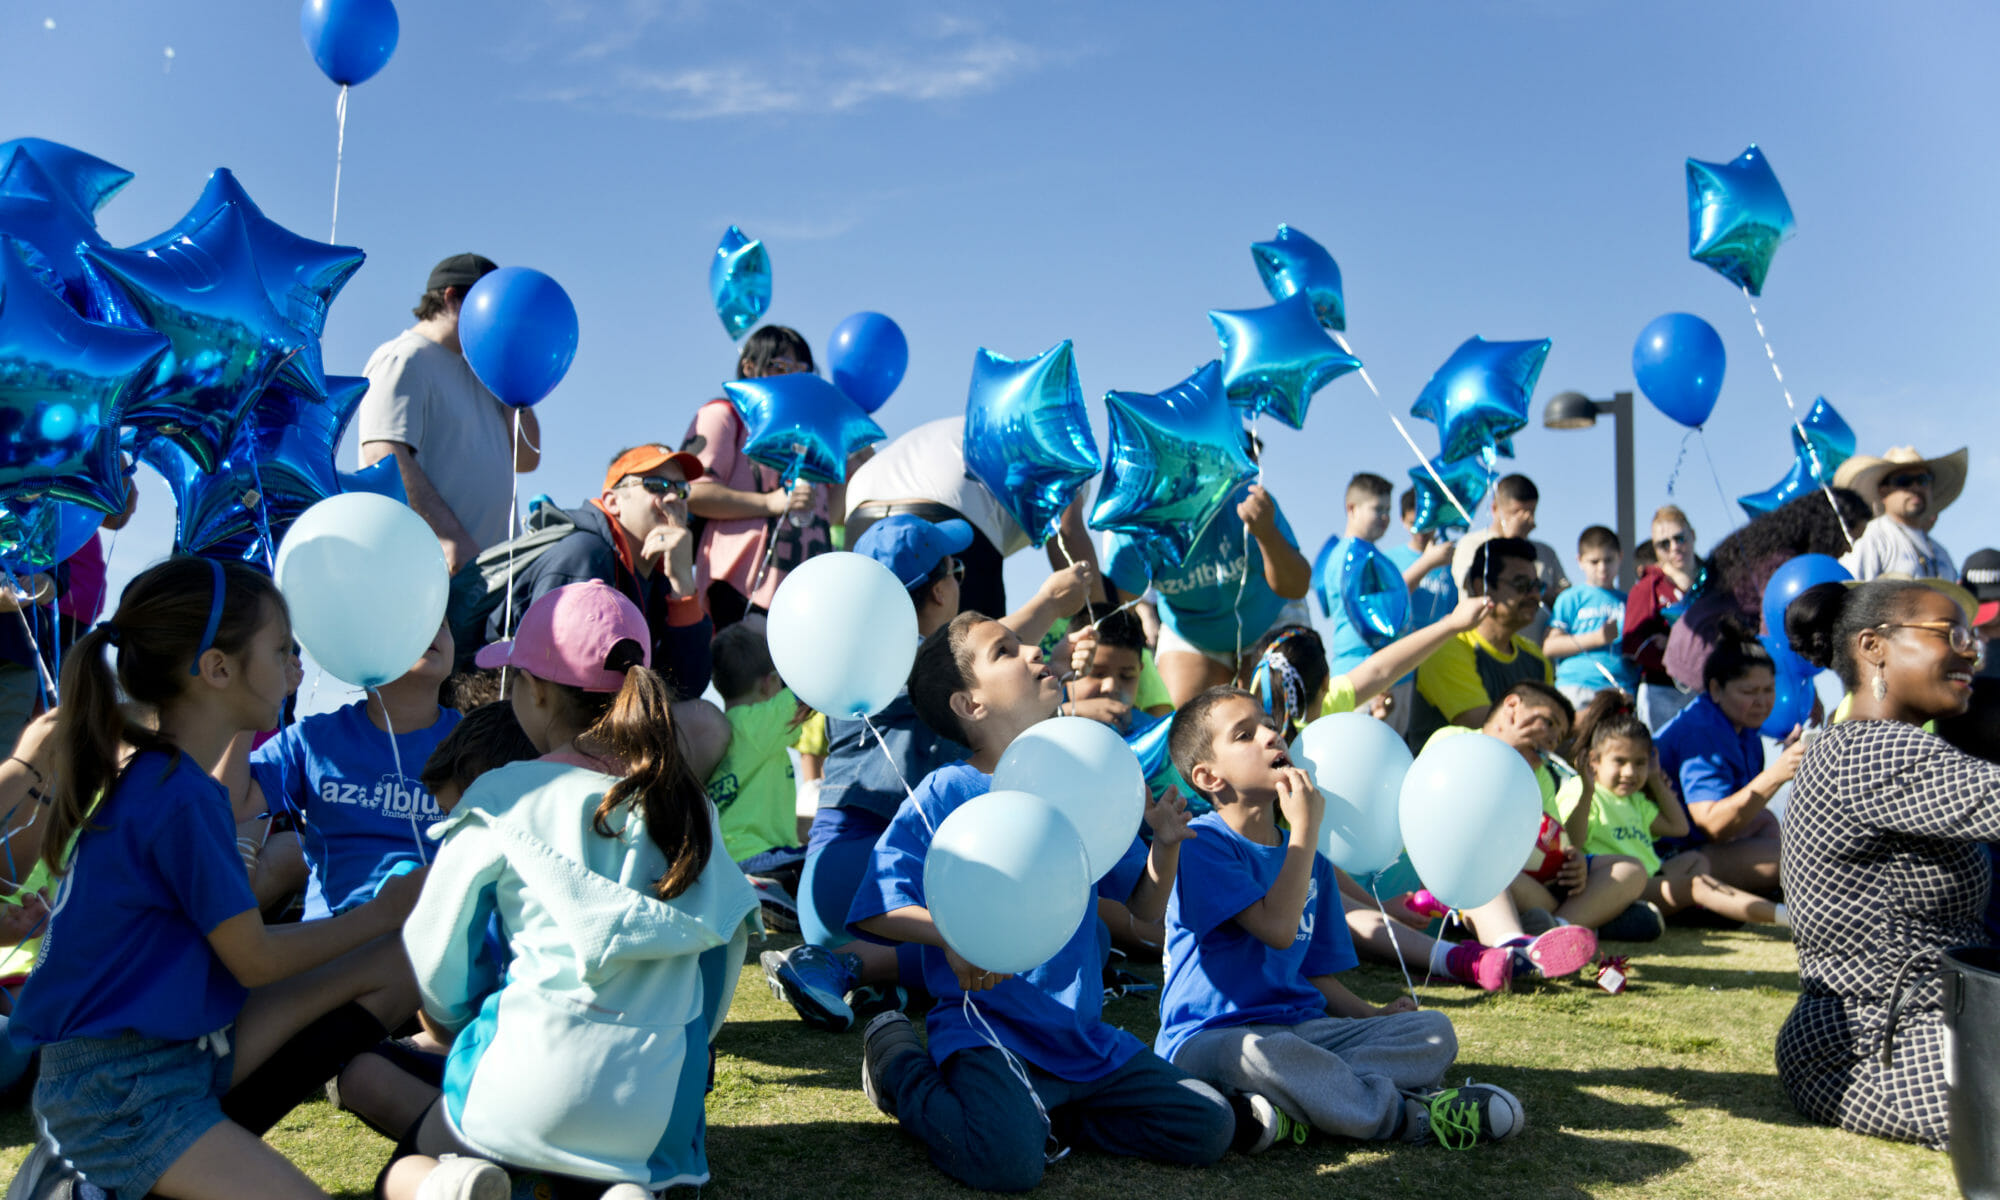 A group of people releasing blue balloons